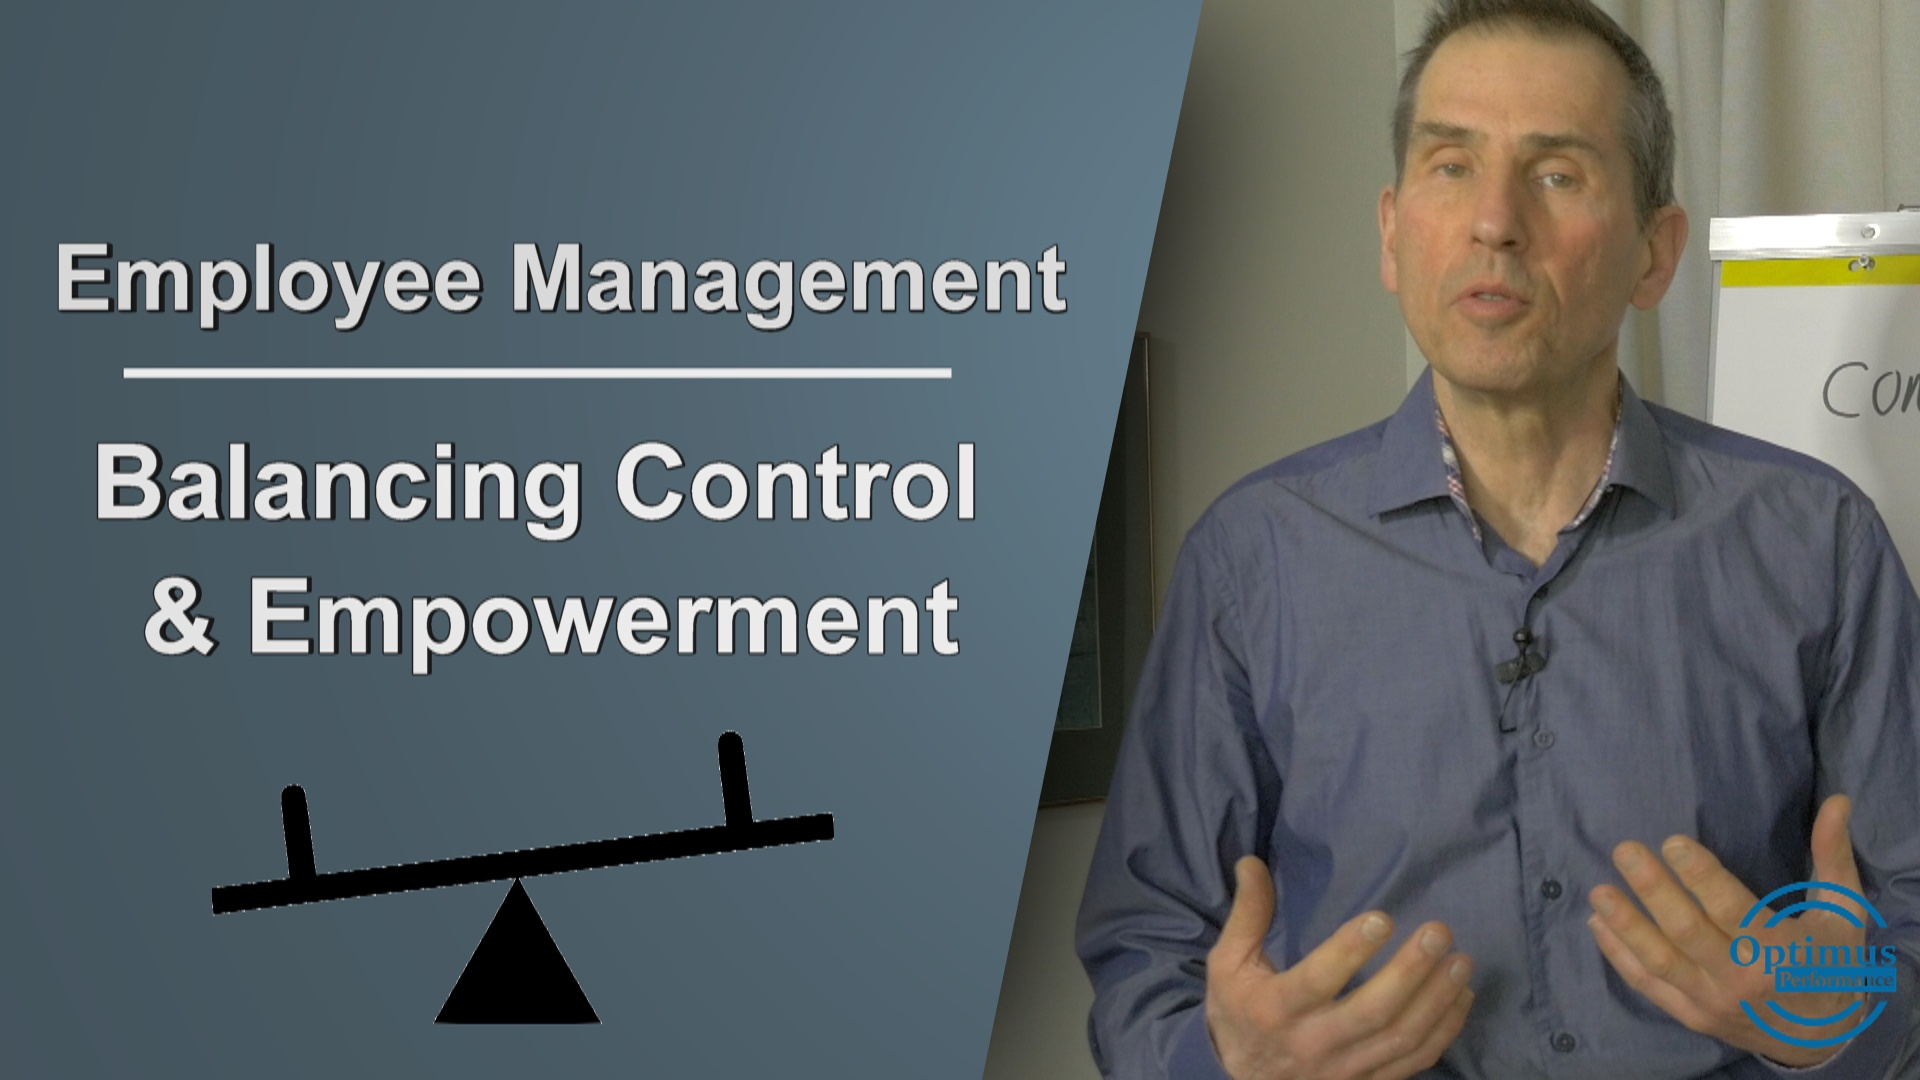 The Managers Guide To Balancing The Control And